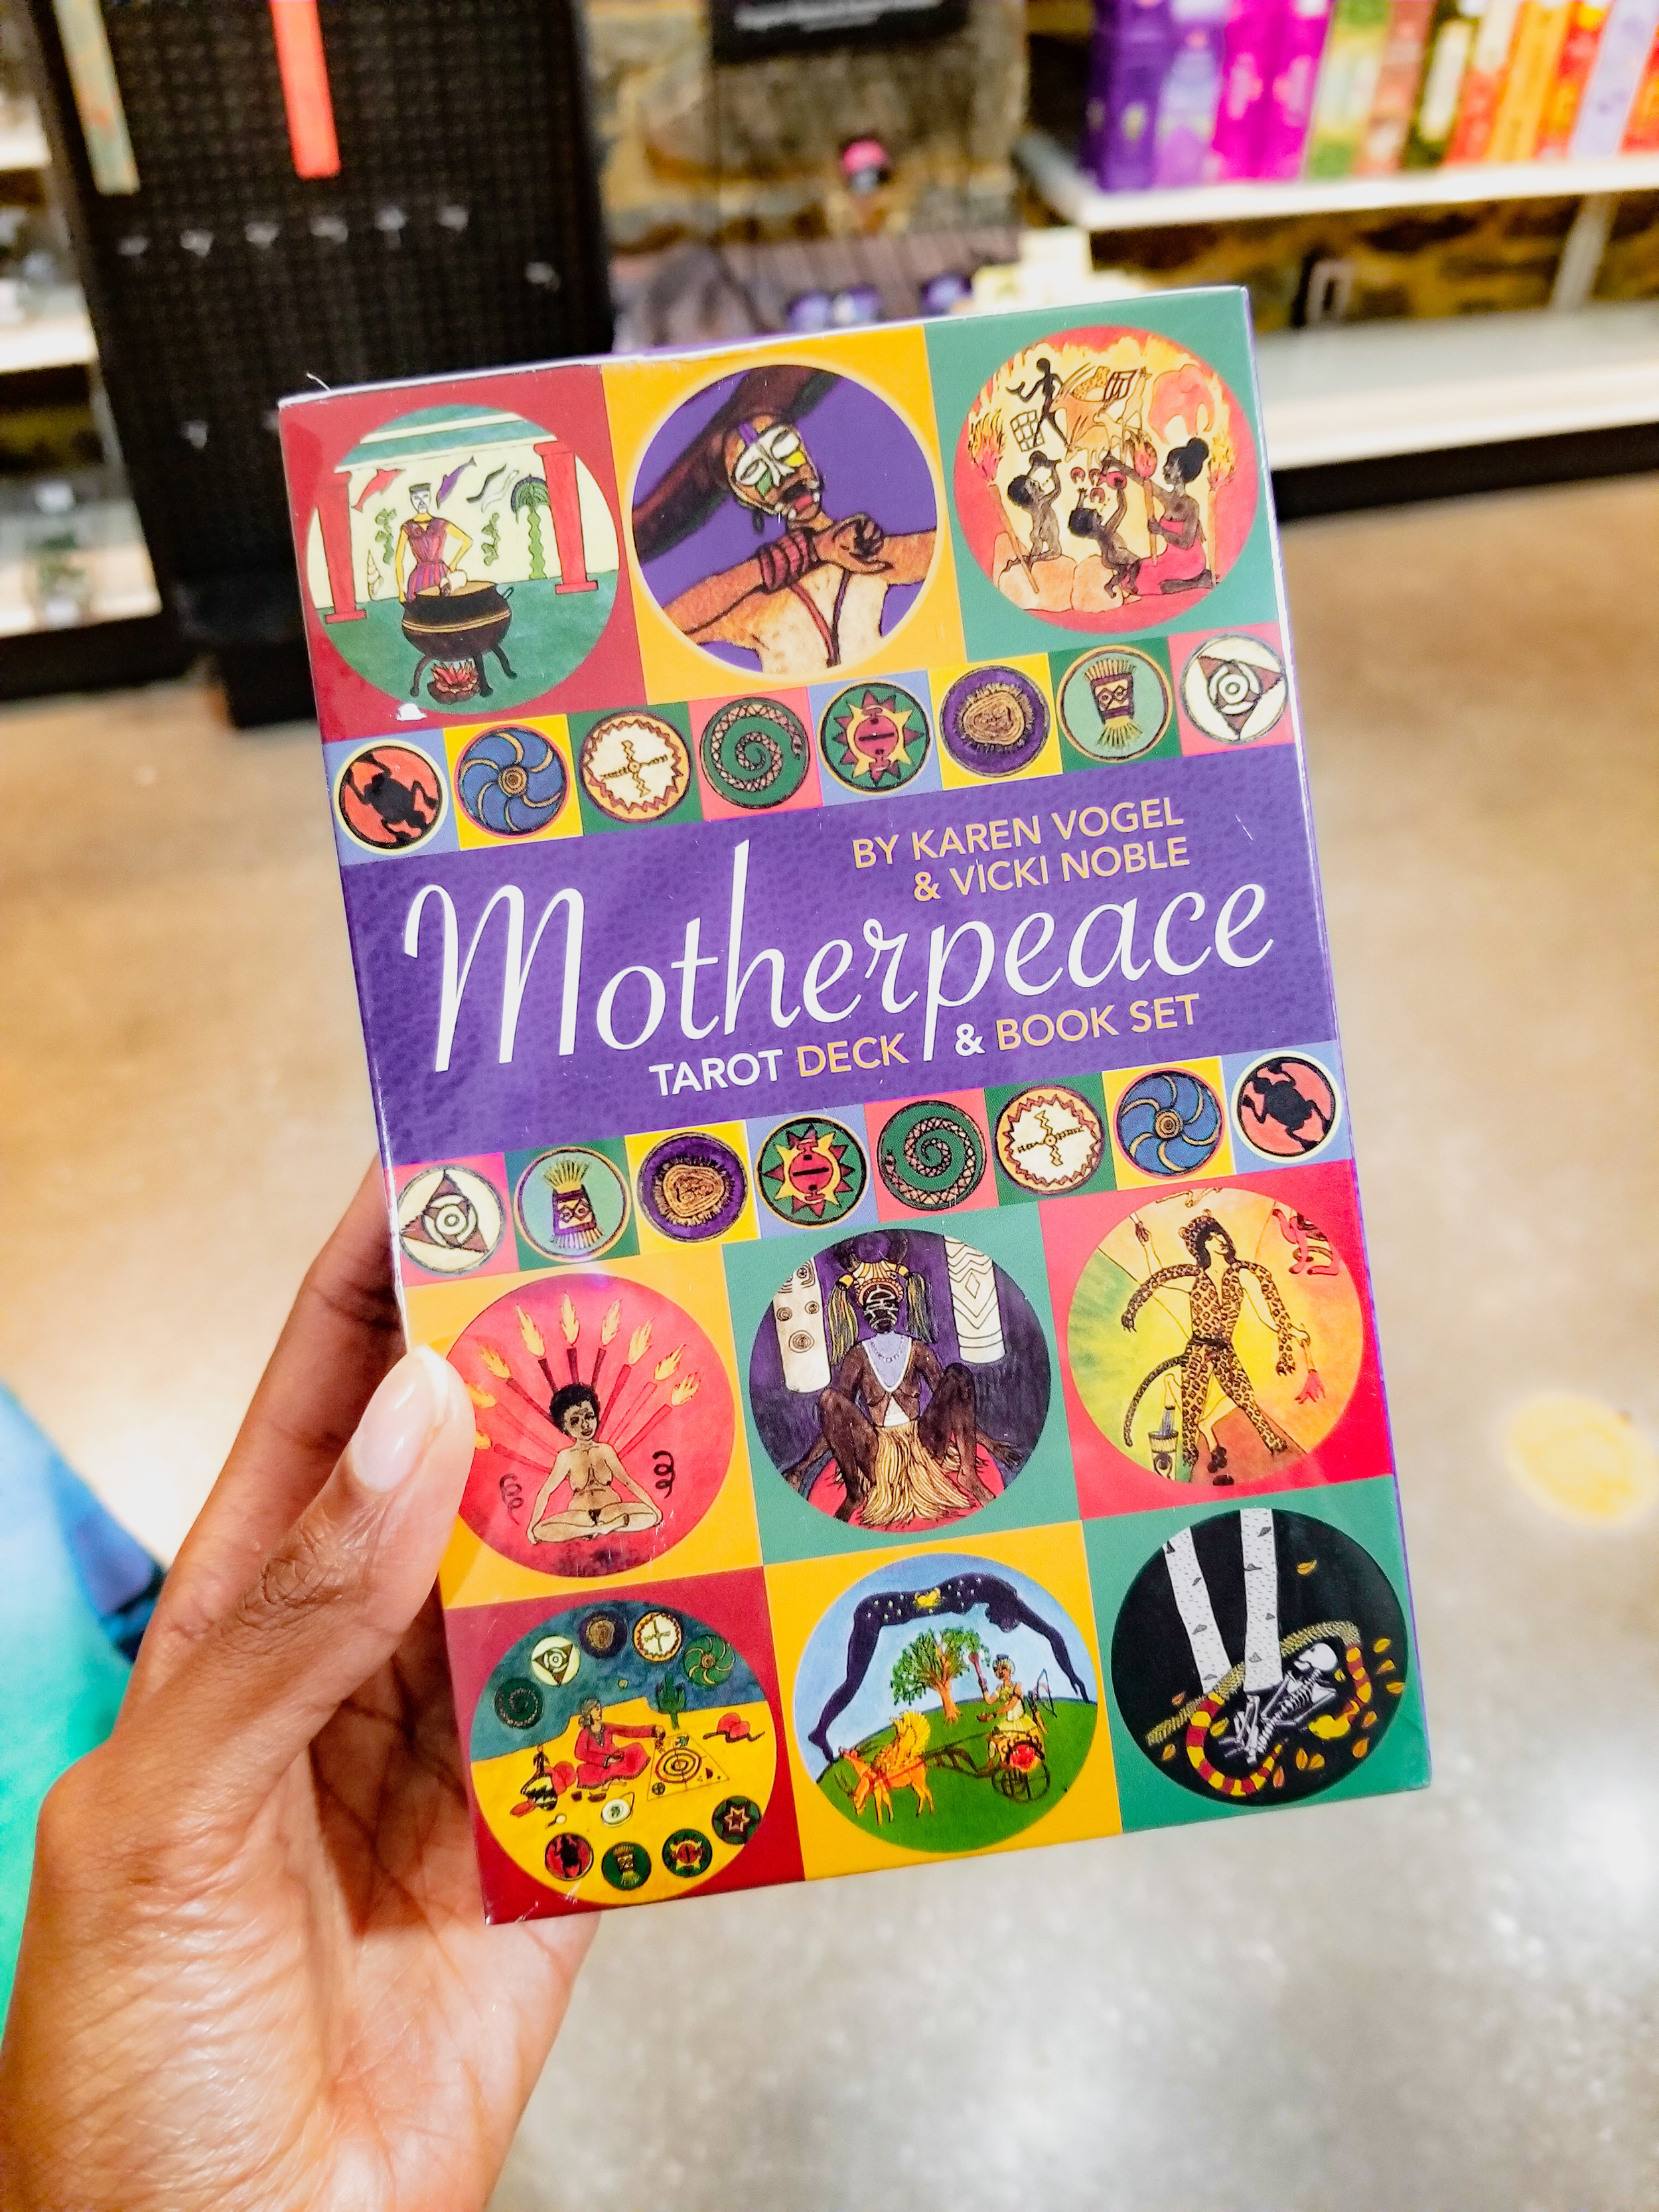 The Motherpeace Tarot Deck - Purchased at Crystals, Candles & Cauldrons in Baltimore, MD